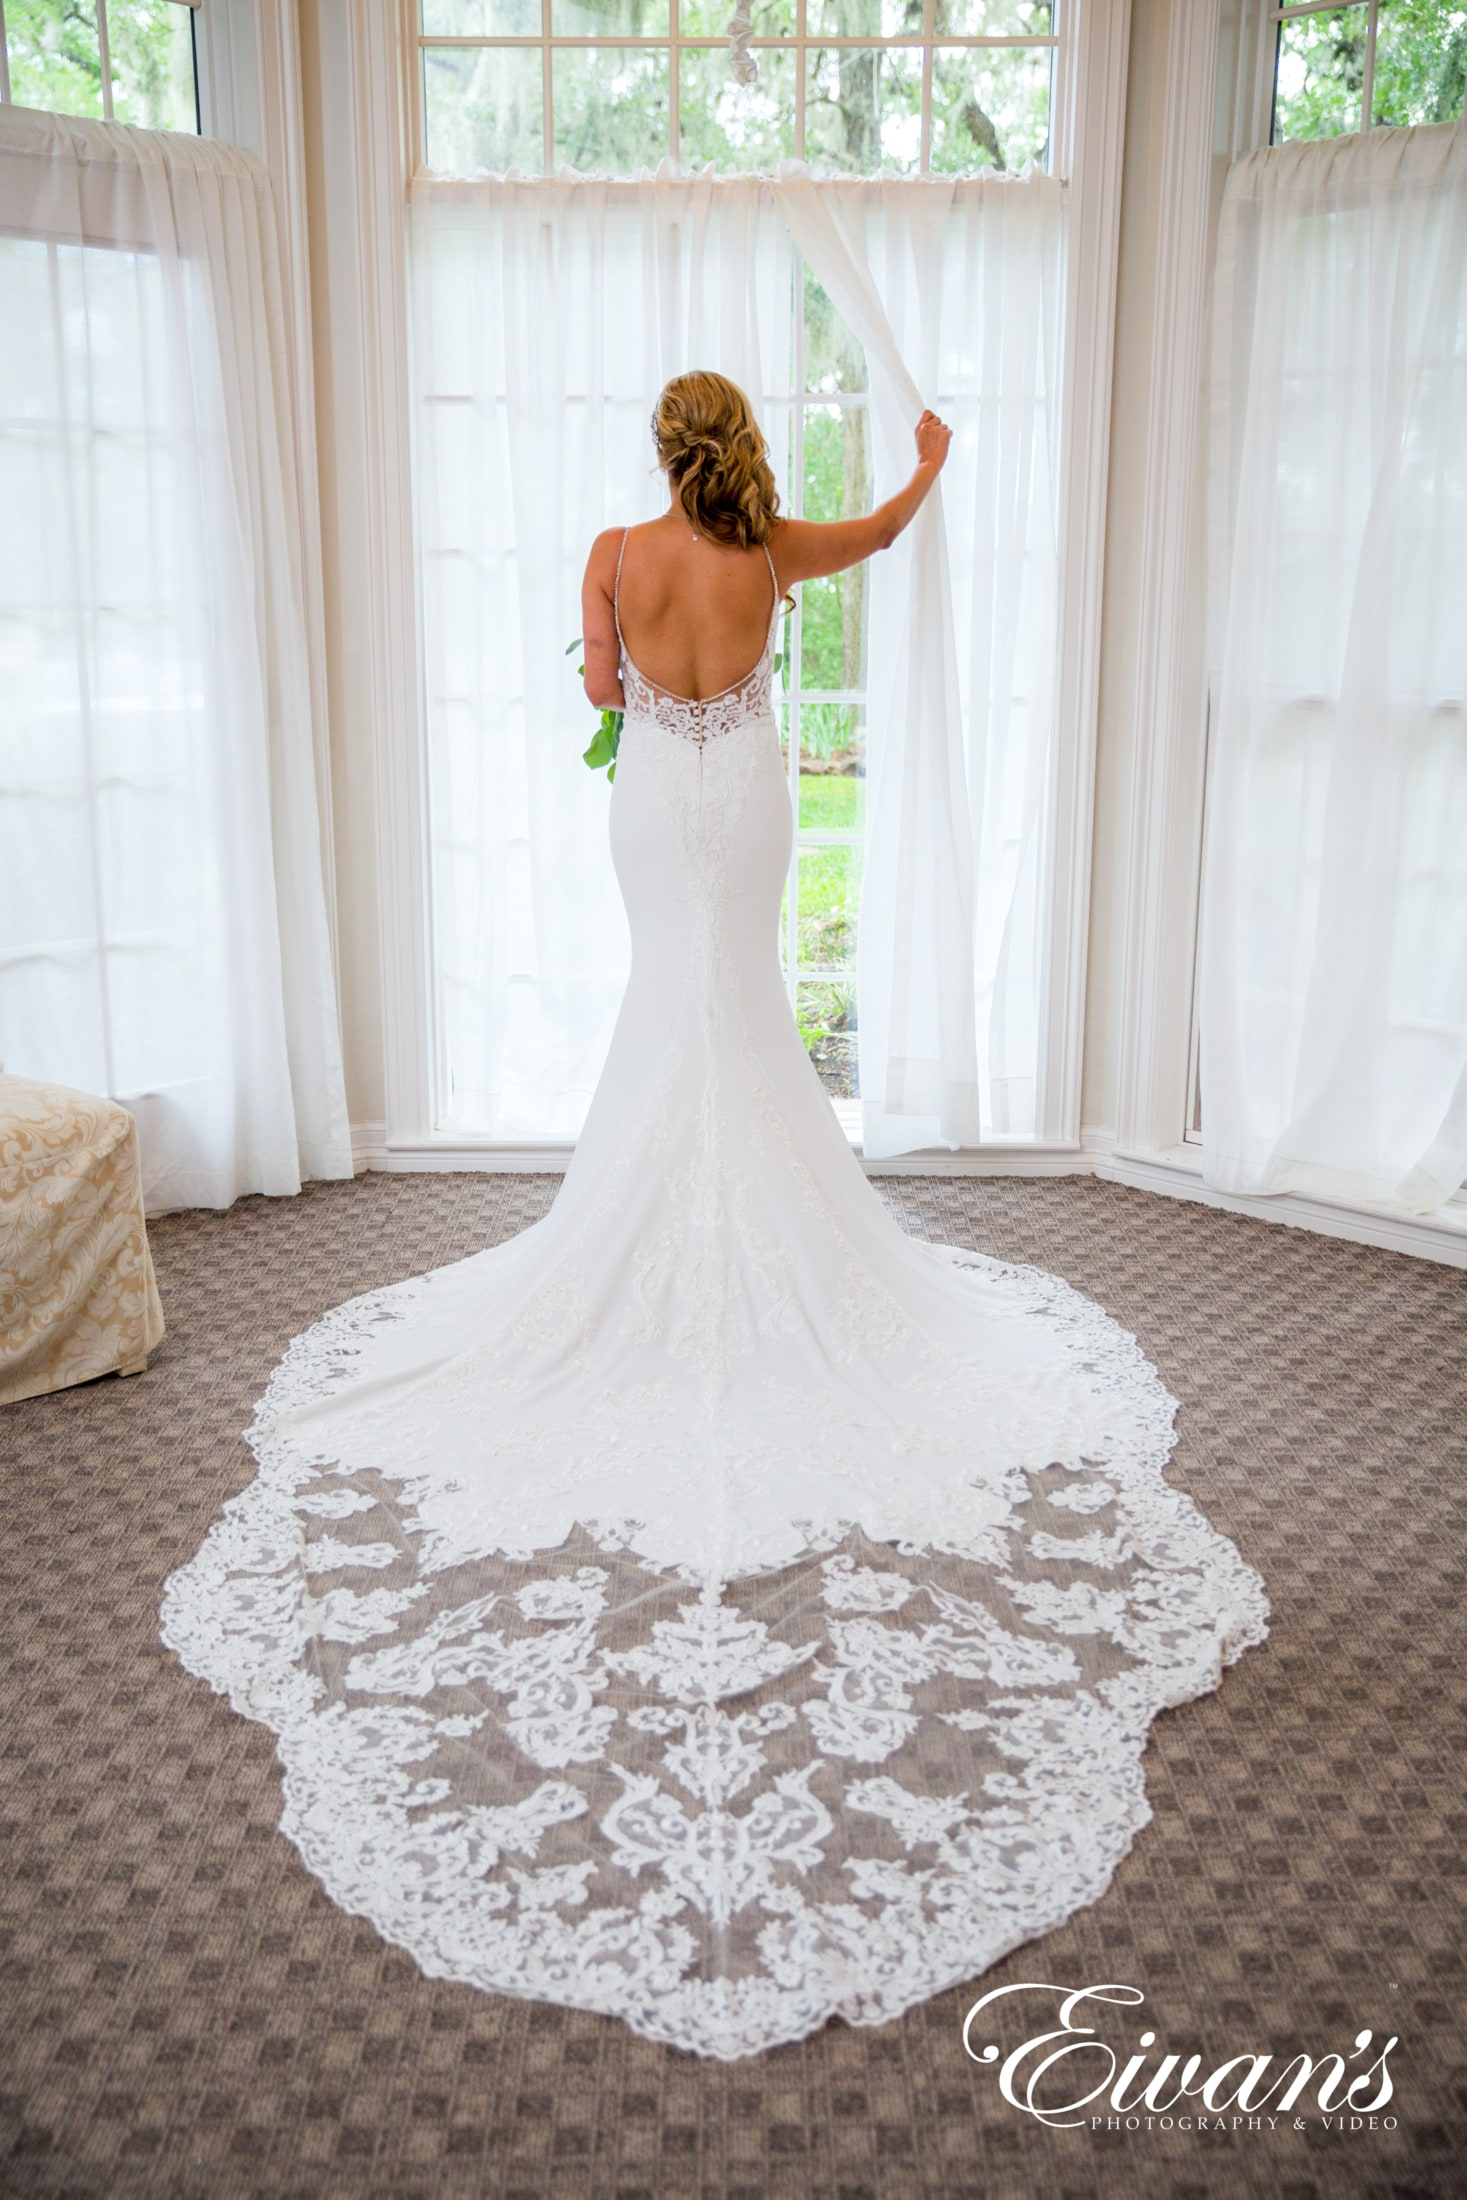 image of a bride wearing her wedding dress